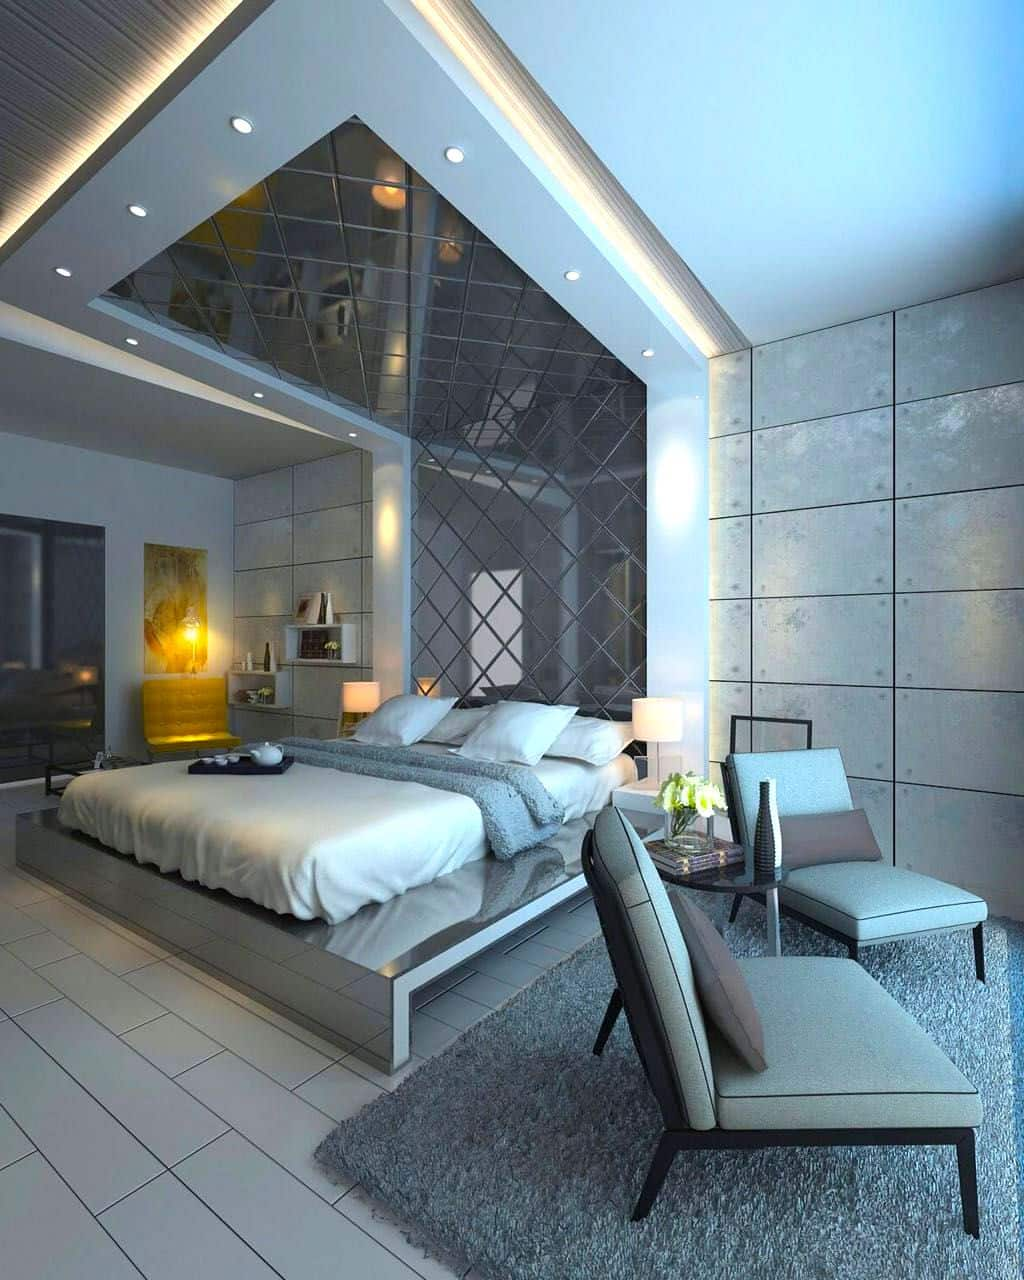 Luxe glossy panels and a whole wall-ceiling installation for amazing futuristic exeprience in the bedroom